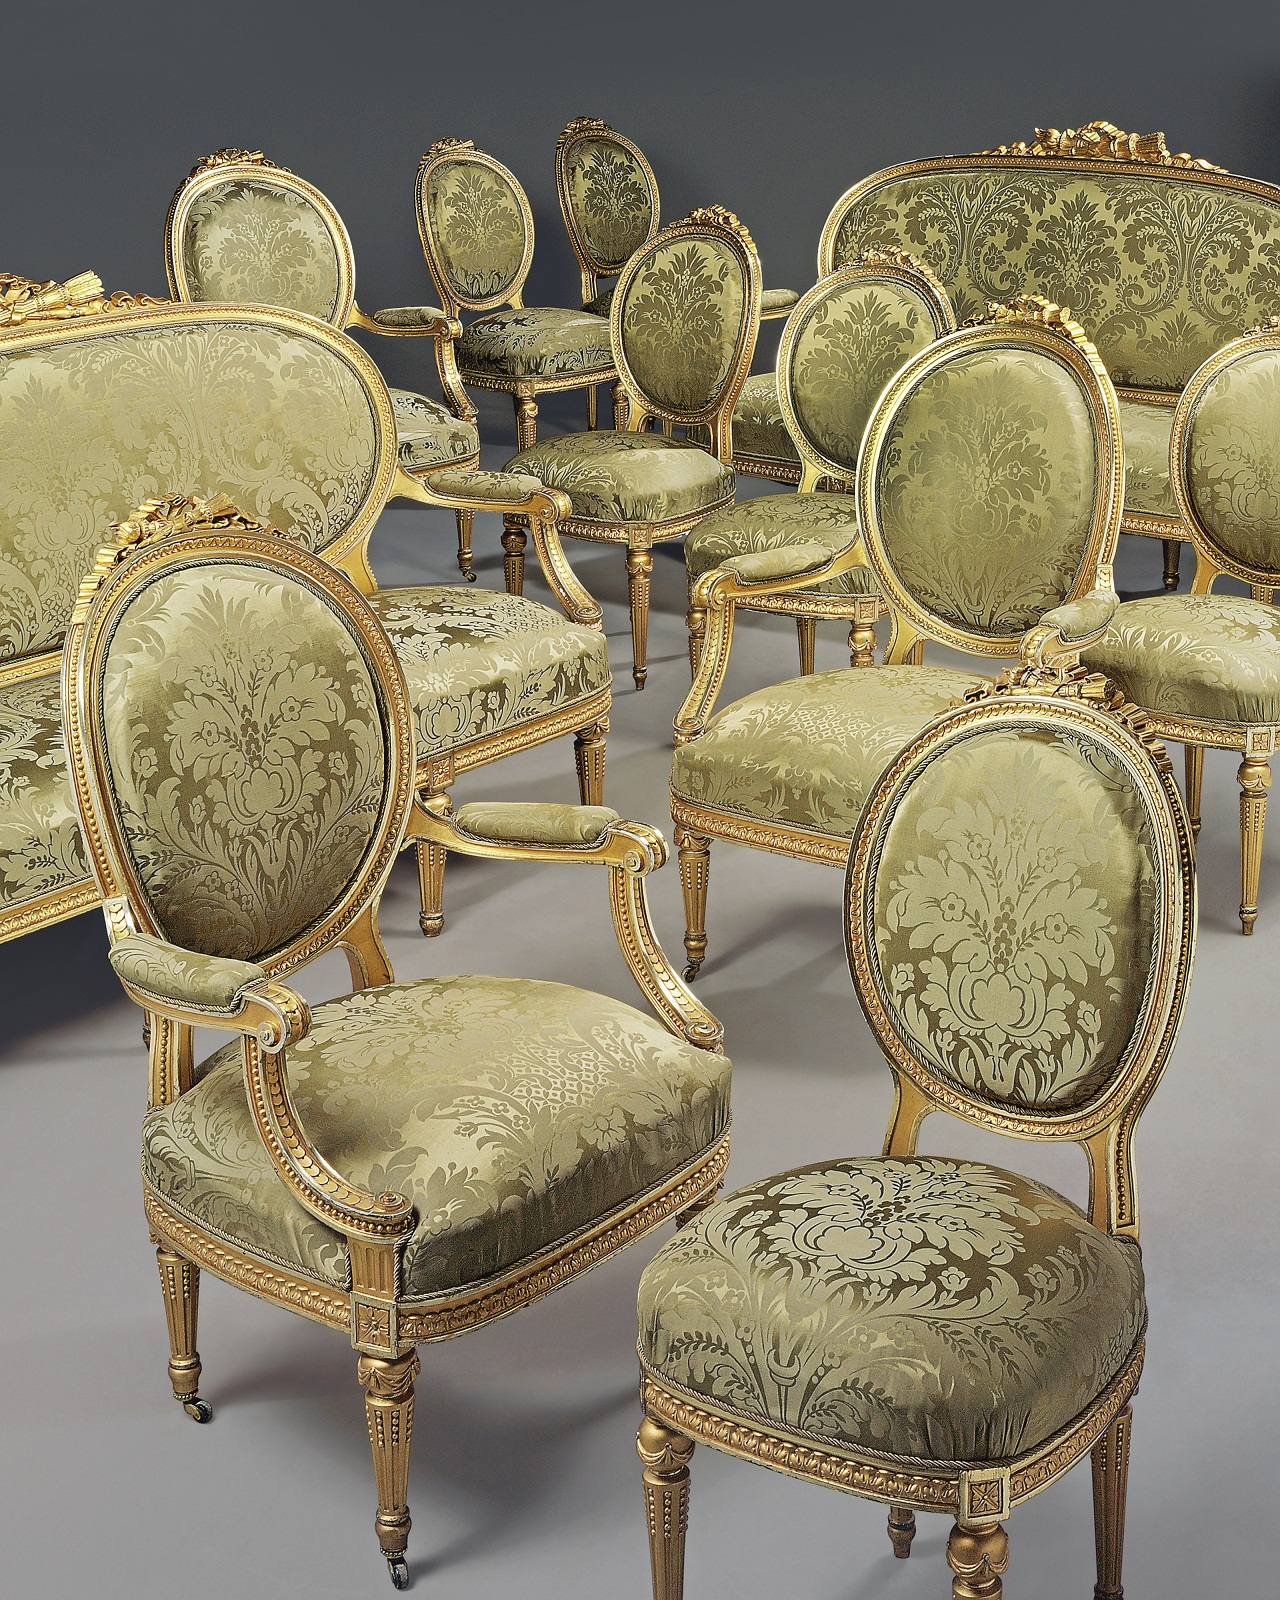 Danish Royal Furniture Comes To Auction In London